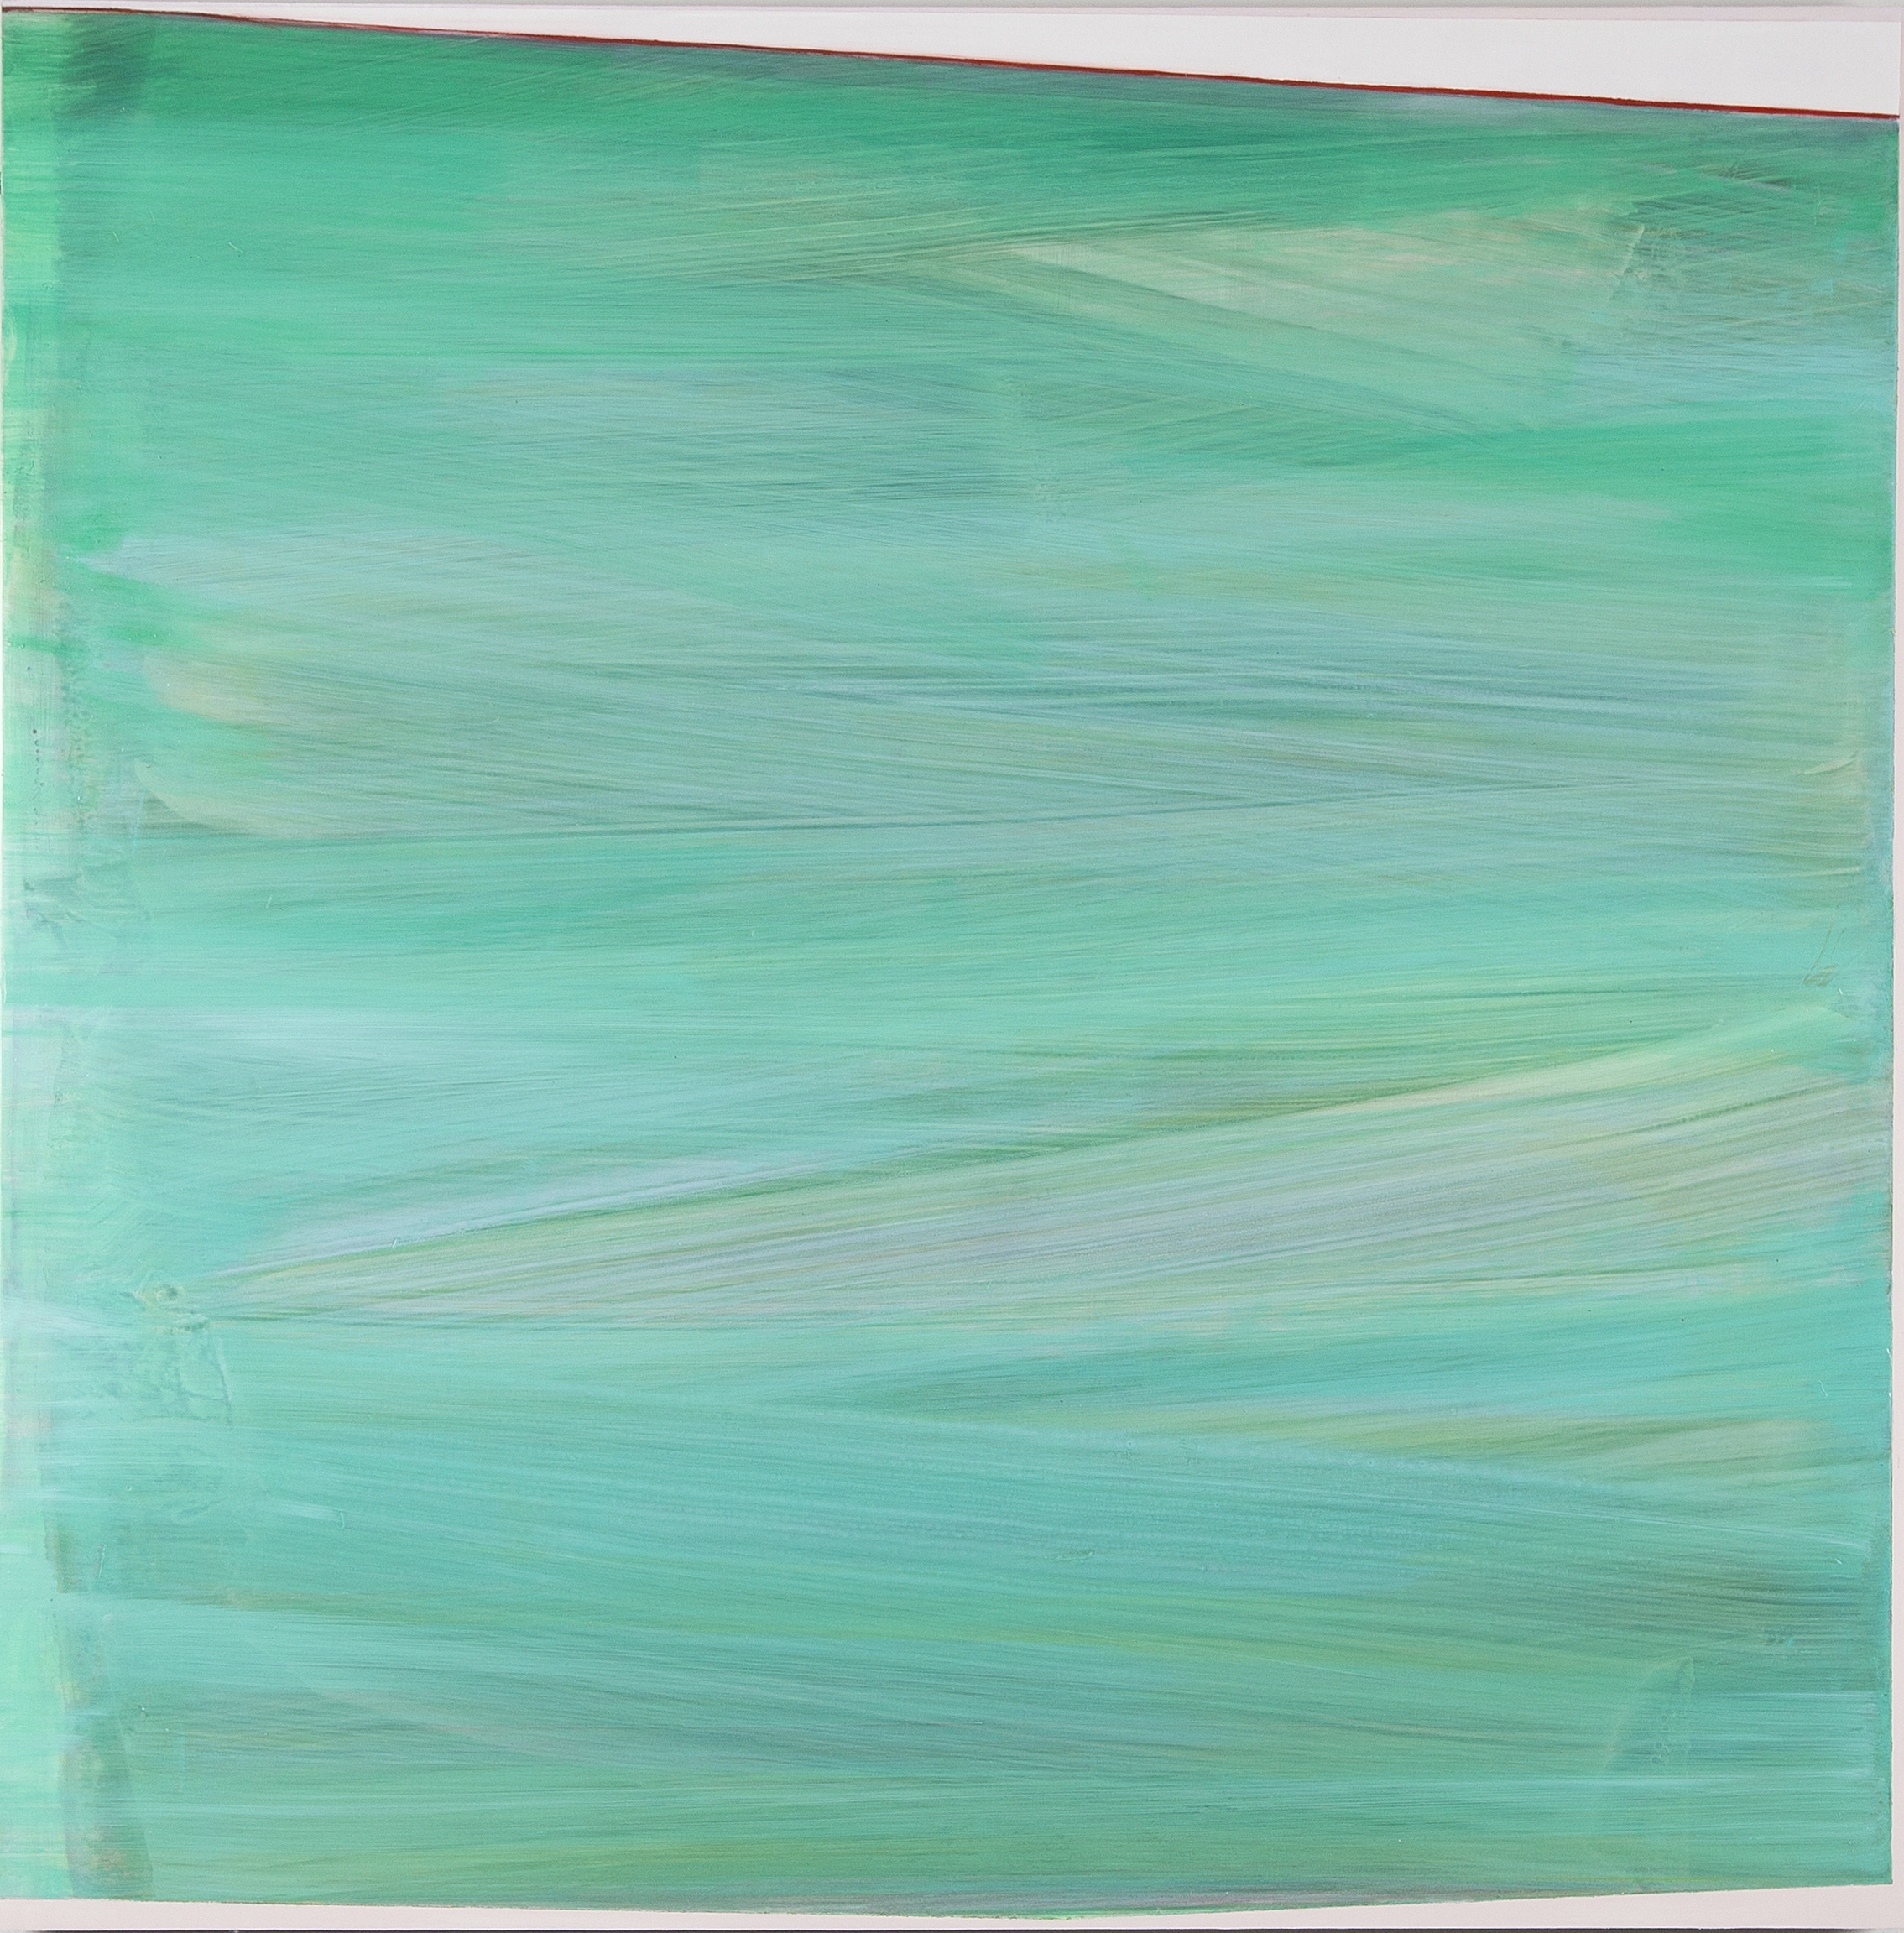 Untitled (teal), 2013